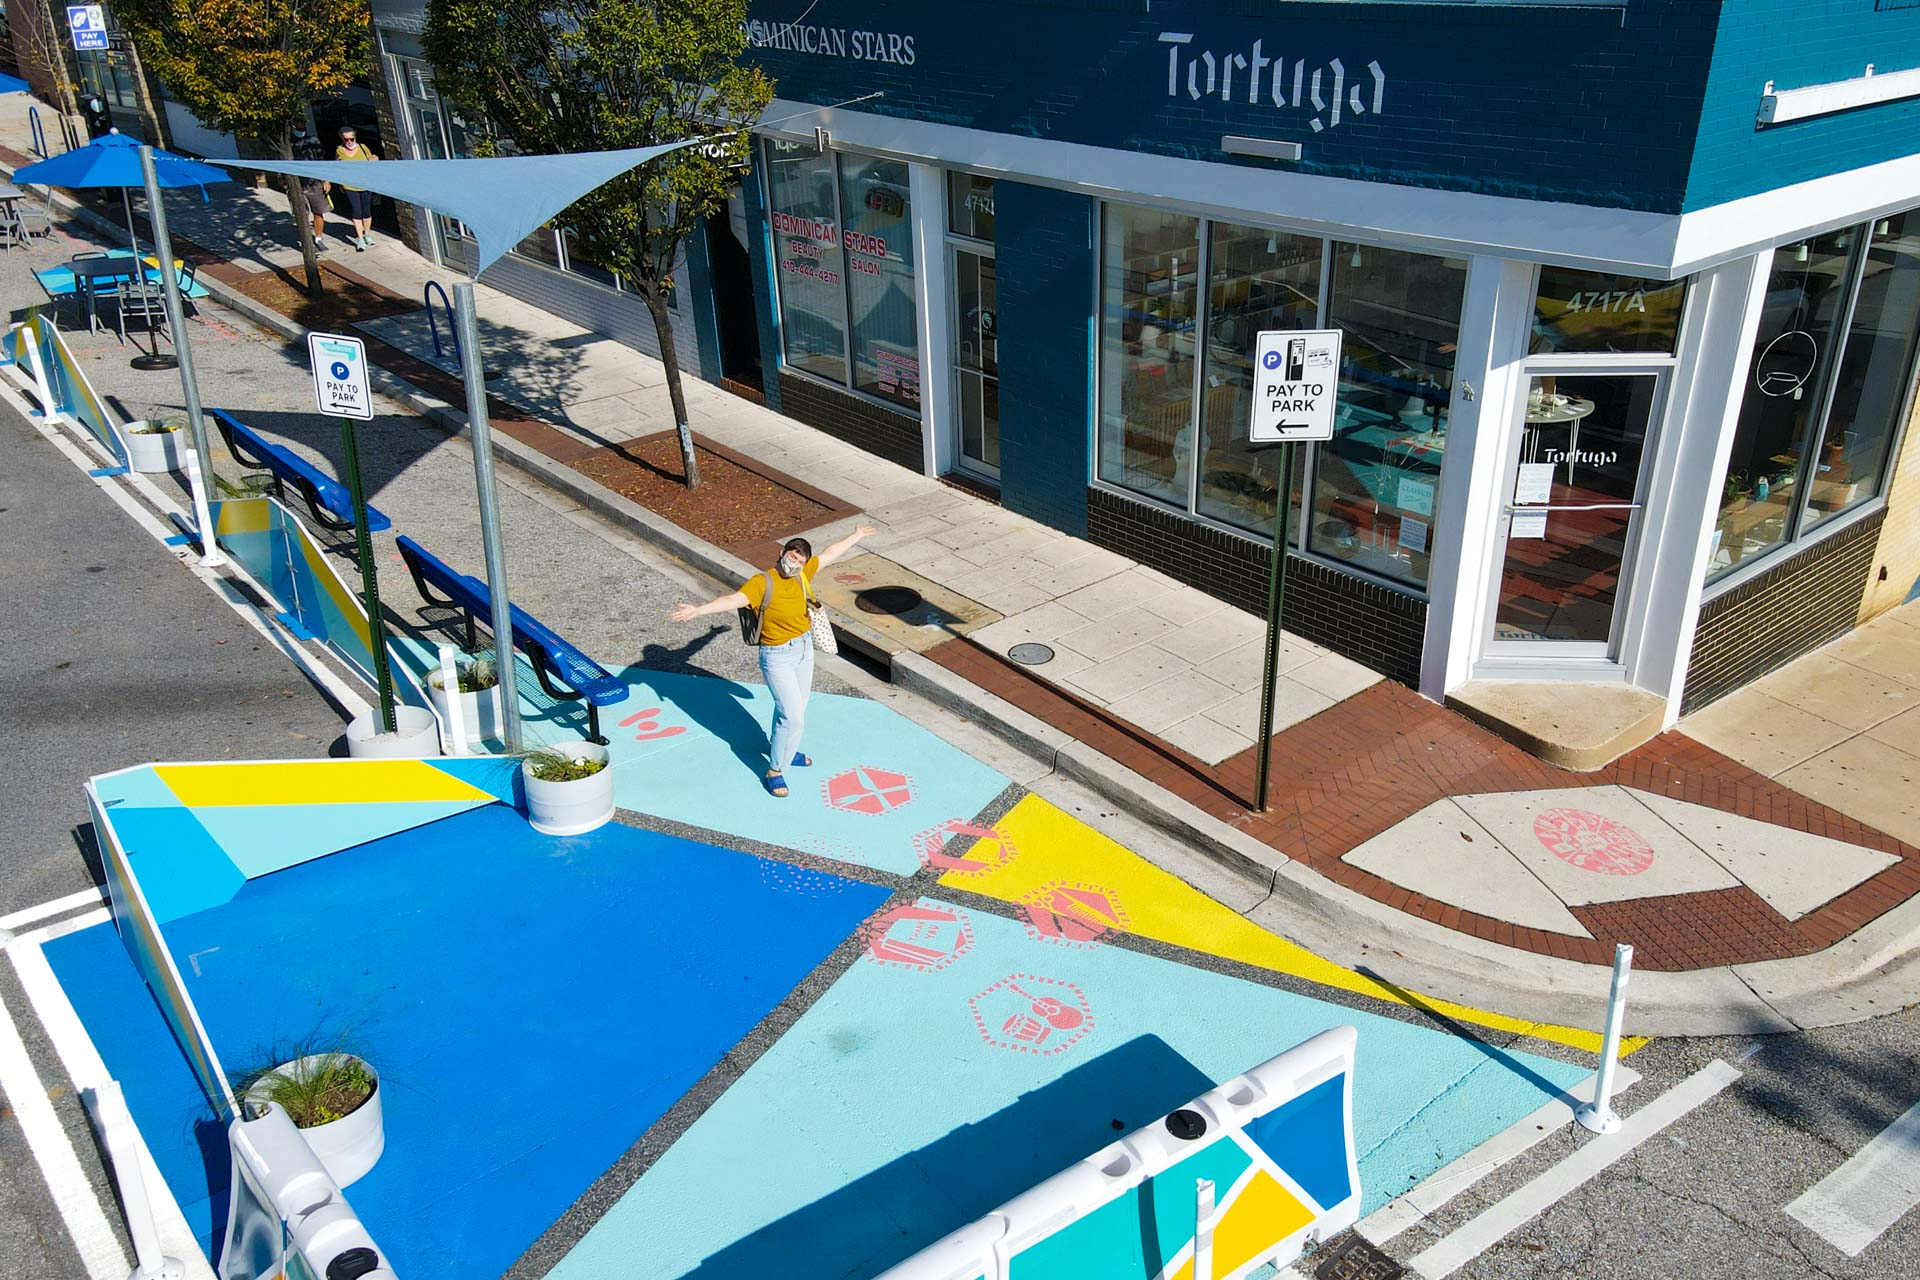 Curbside Commons Tortuga corner